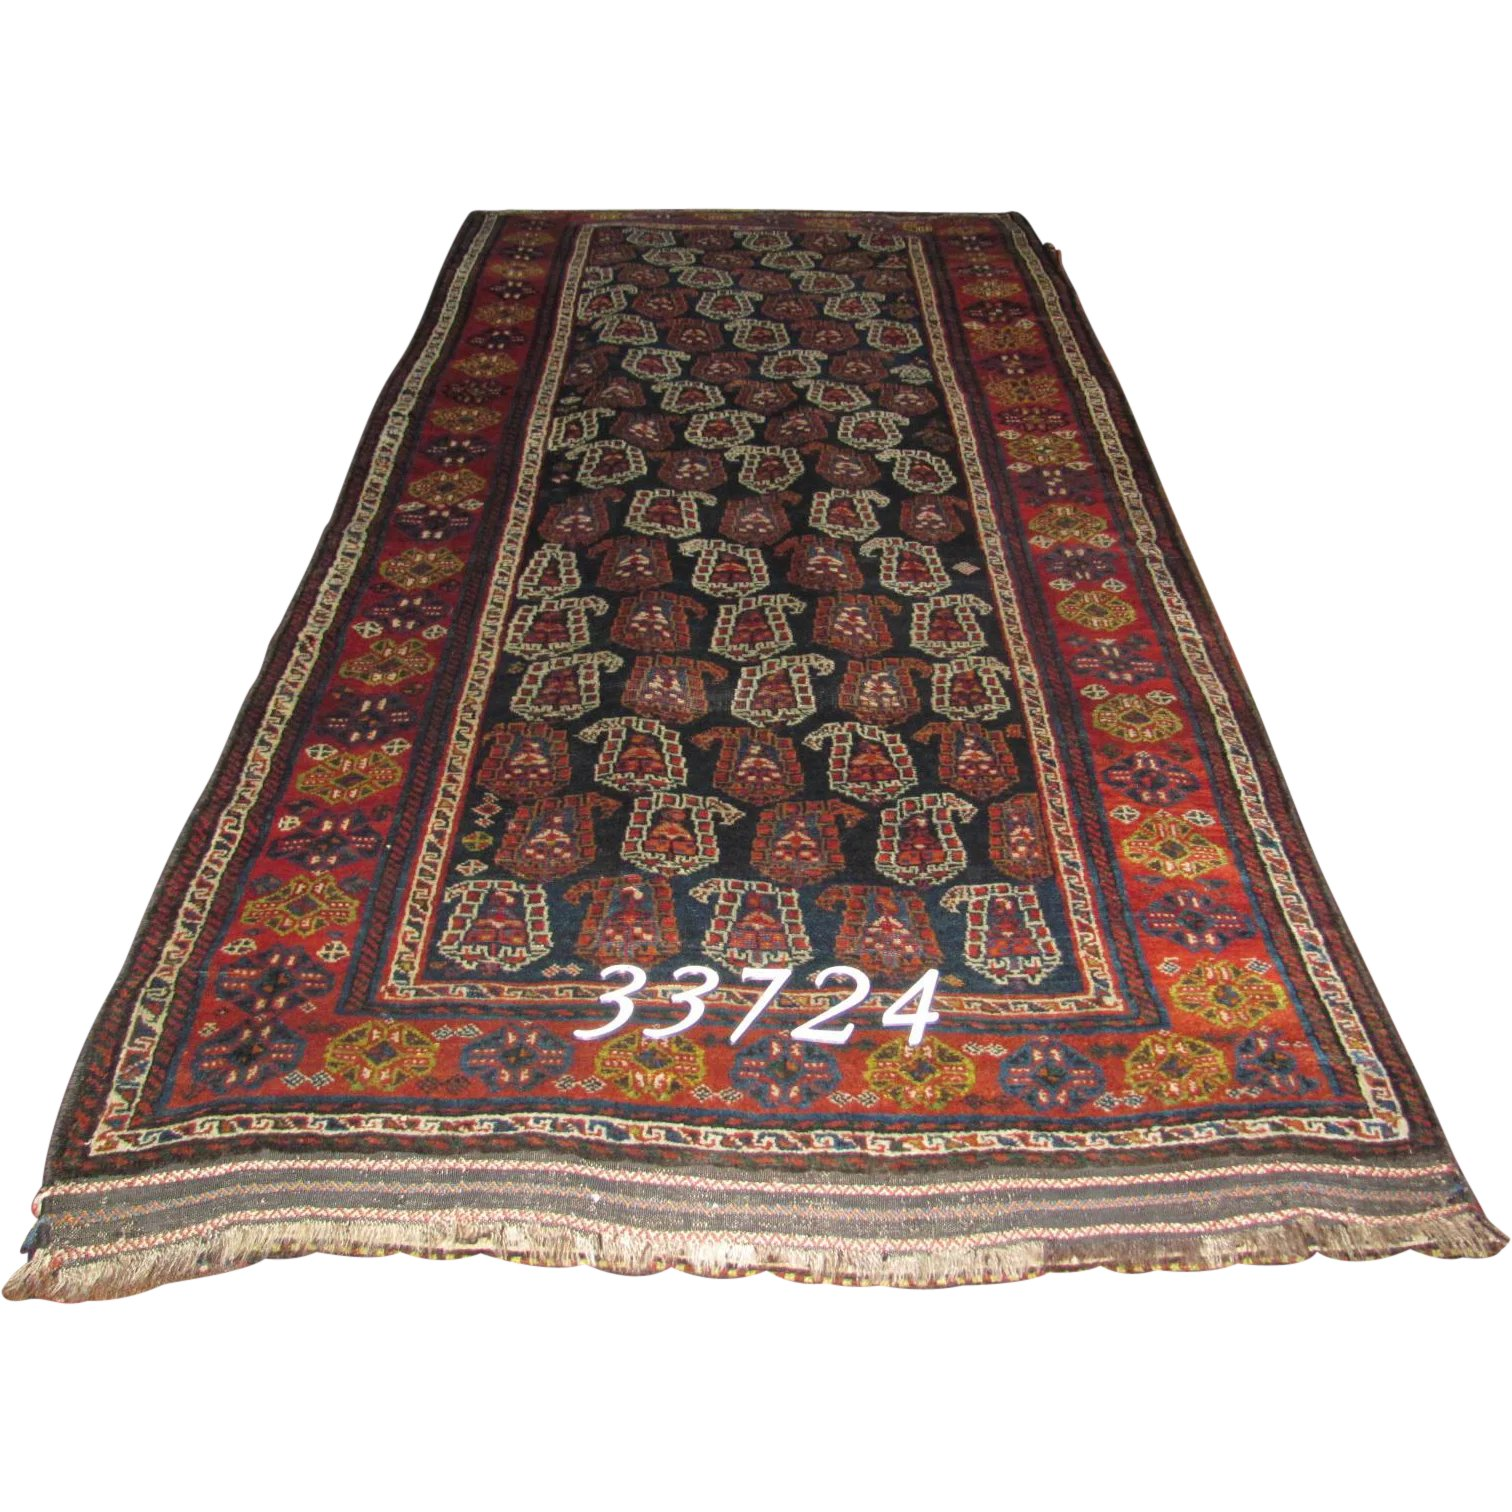 urun ft handmade img rug jpg handwoven colour area muted turkish oushak natural anatolian revision vintage